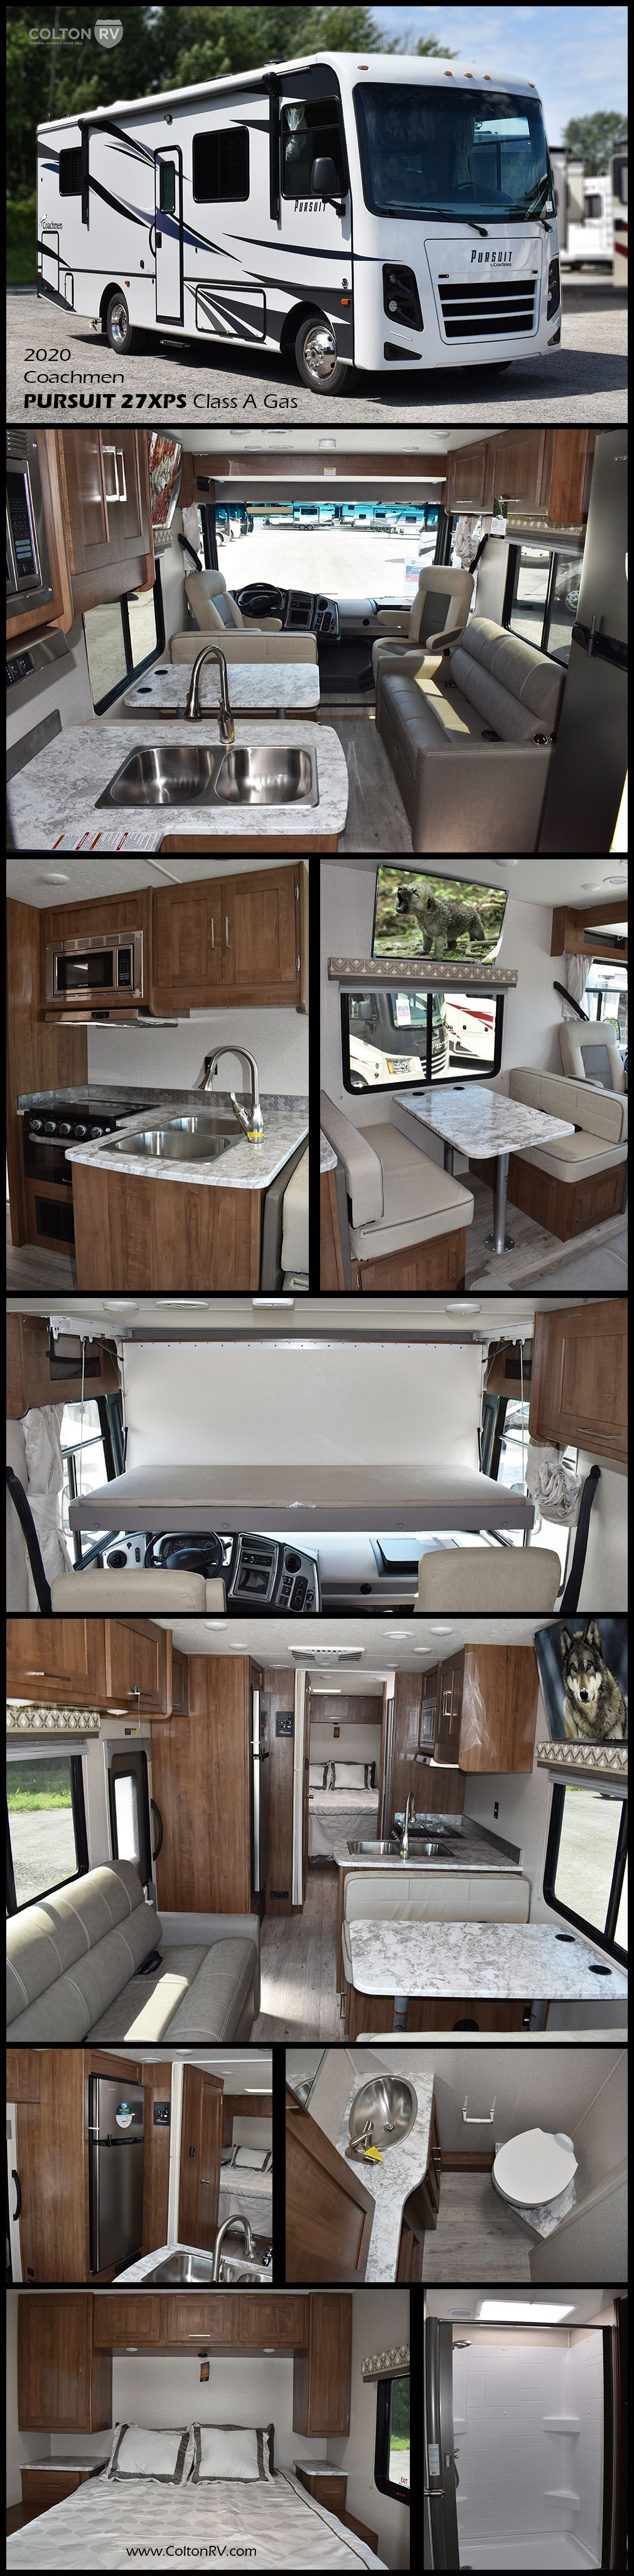 Inventory Colton Rv In Ny Buffalo Rochester And Syracuse Ny Rv Dealer Fifth Wheel Campers And Class A Motorhomes For Sale In Ny Motorhomes For Sale Motorhome Grand Design Rv